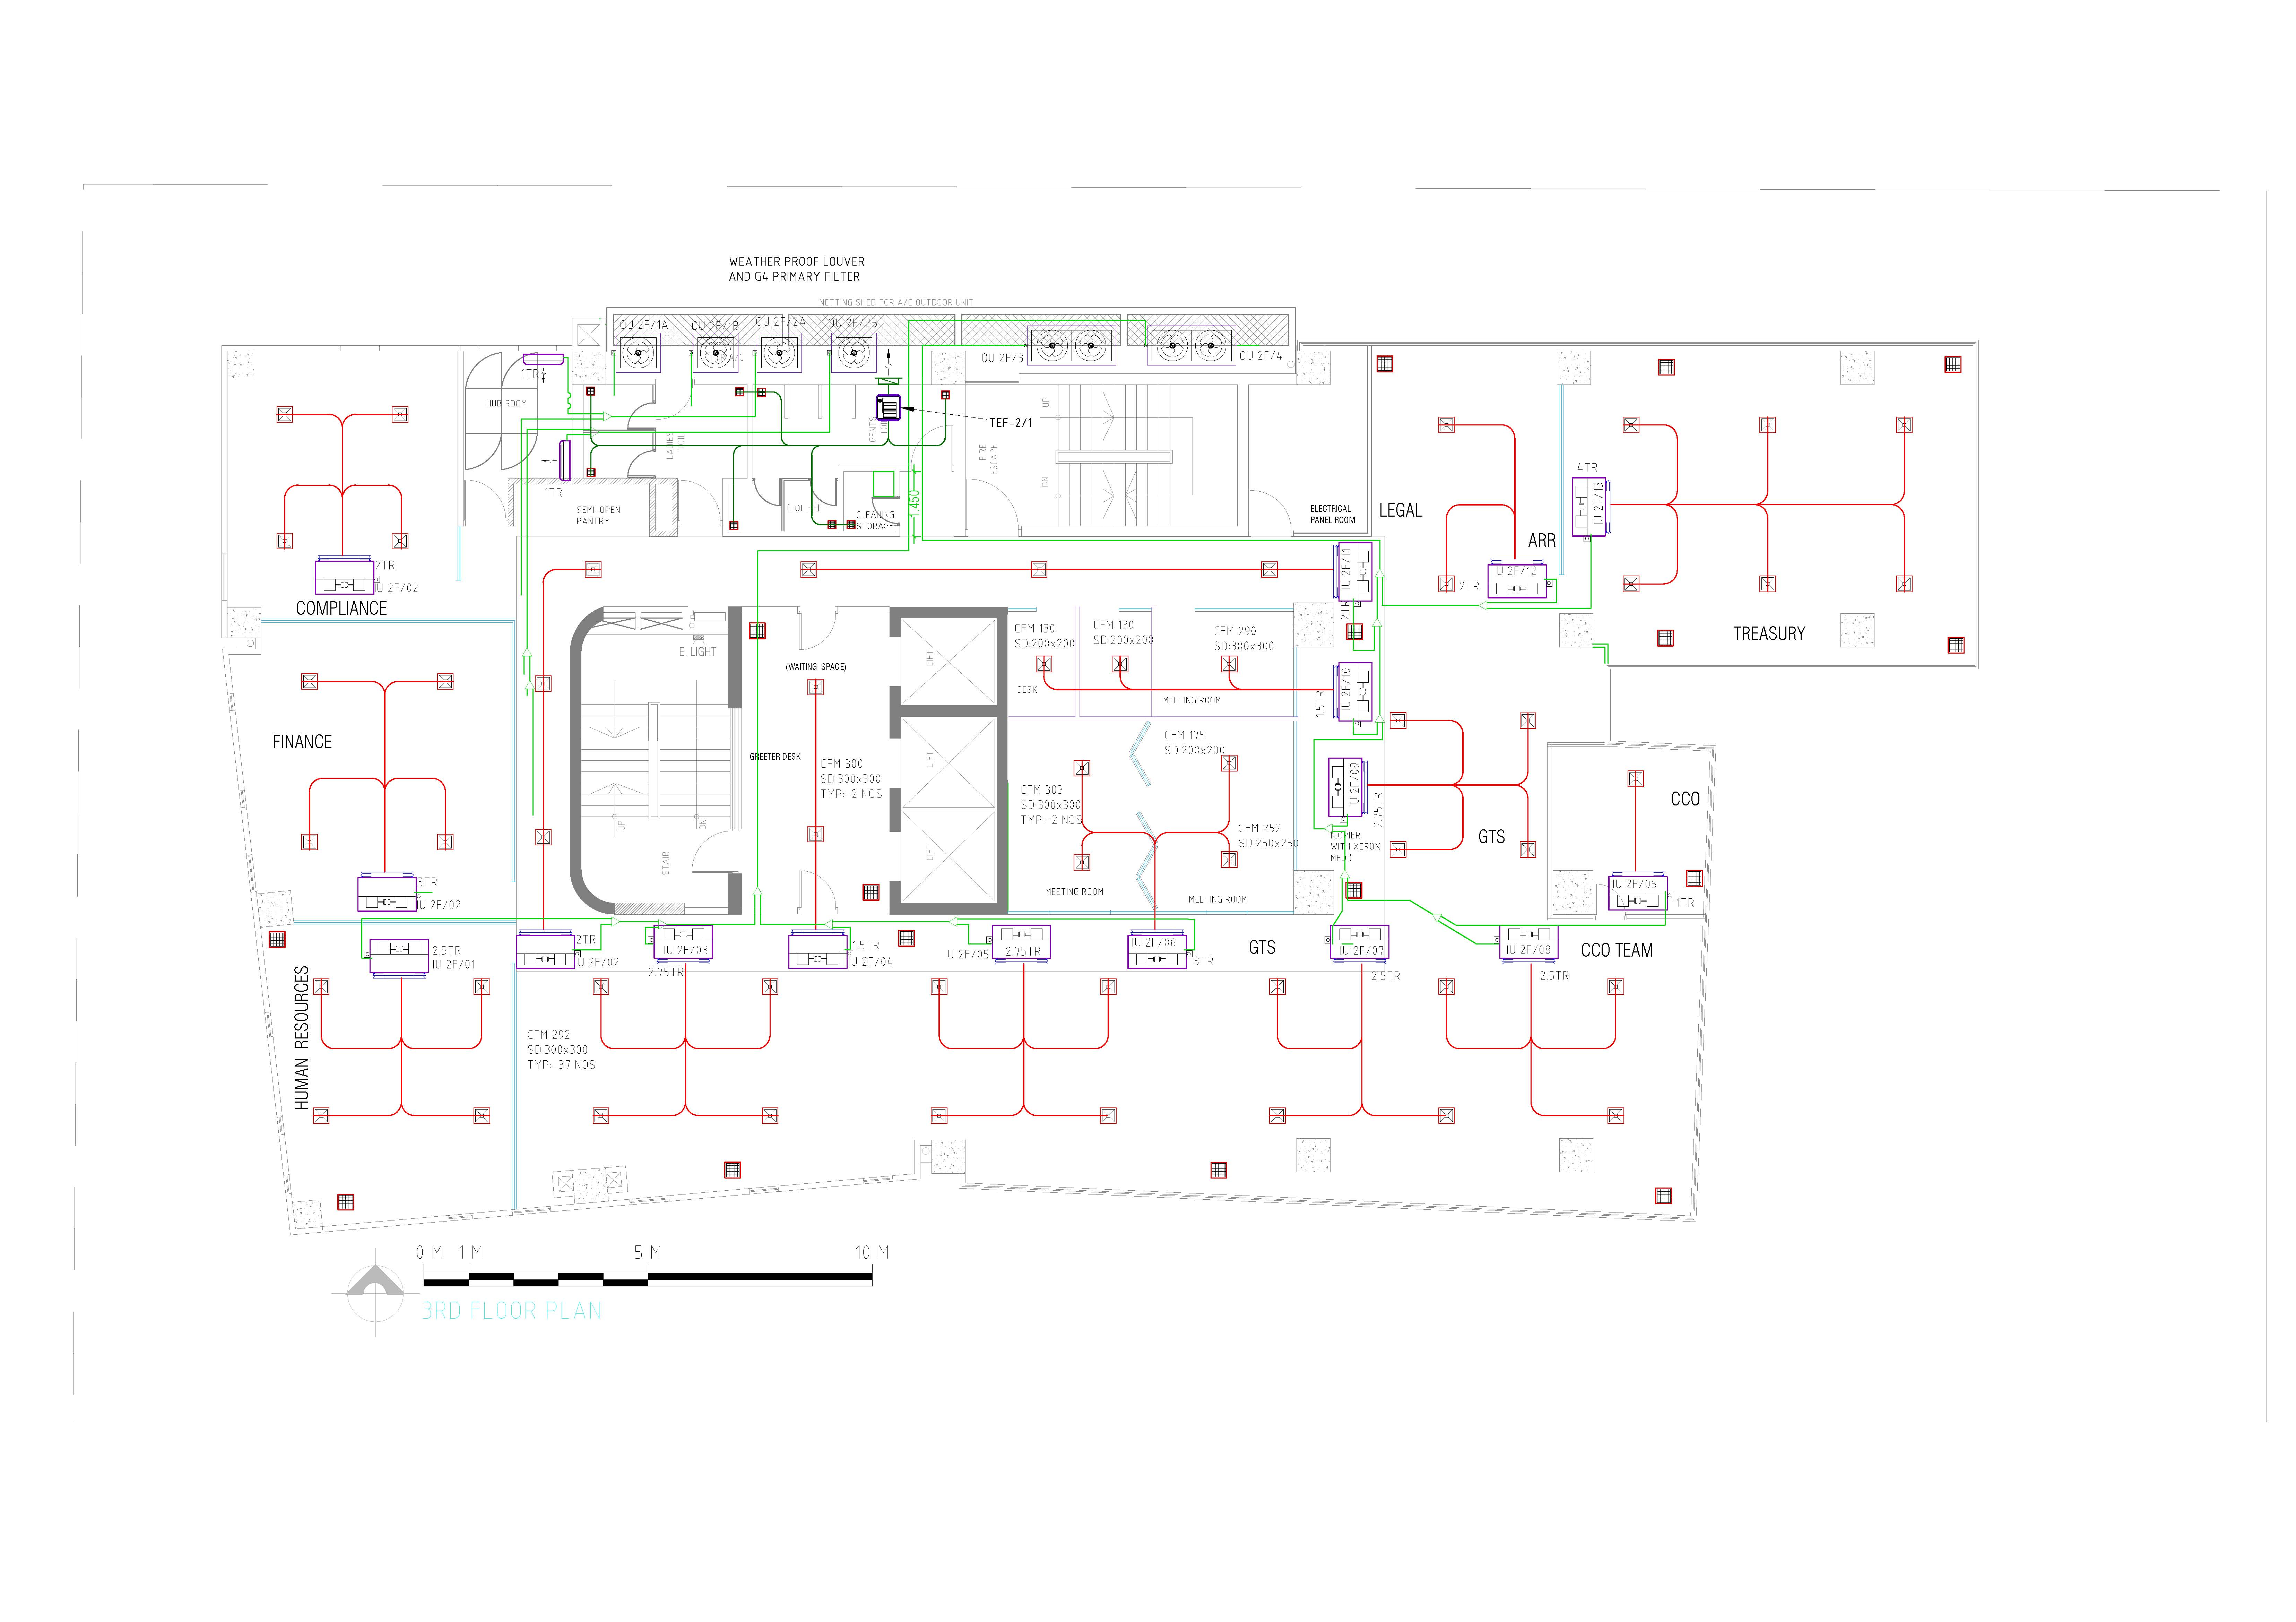 Draw Any Hvac System Layout Drawing For Autocad 2d By Mahabubur8407 Systems